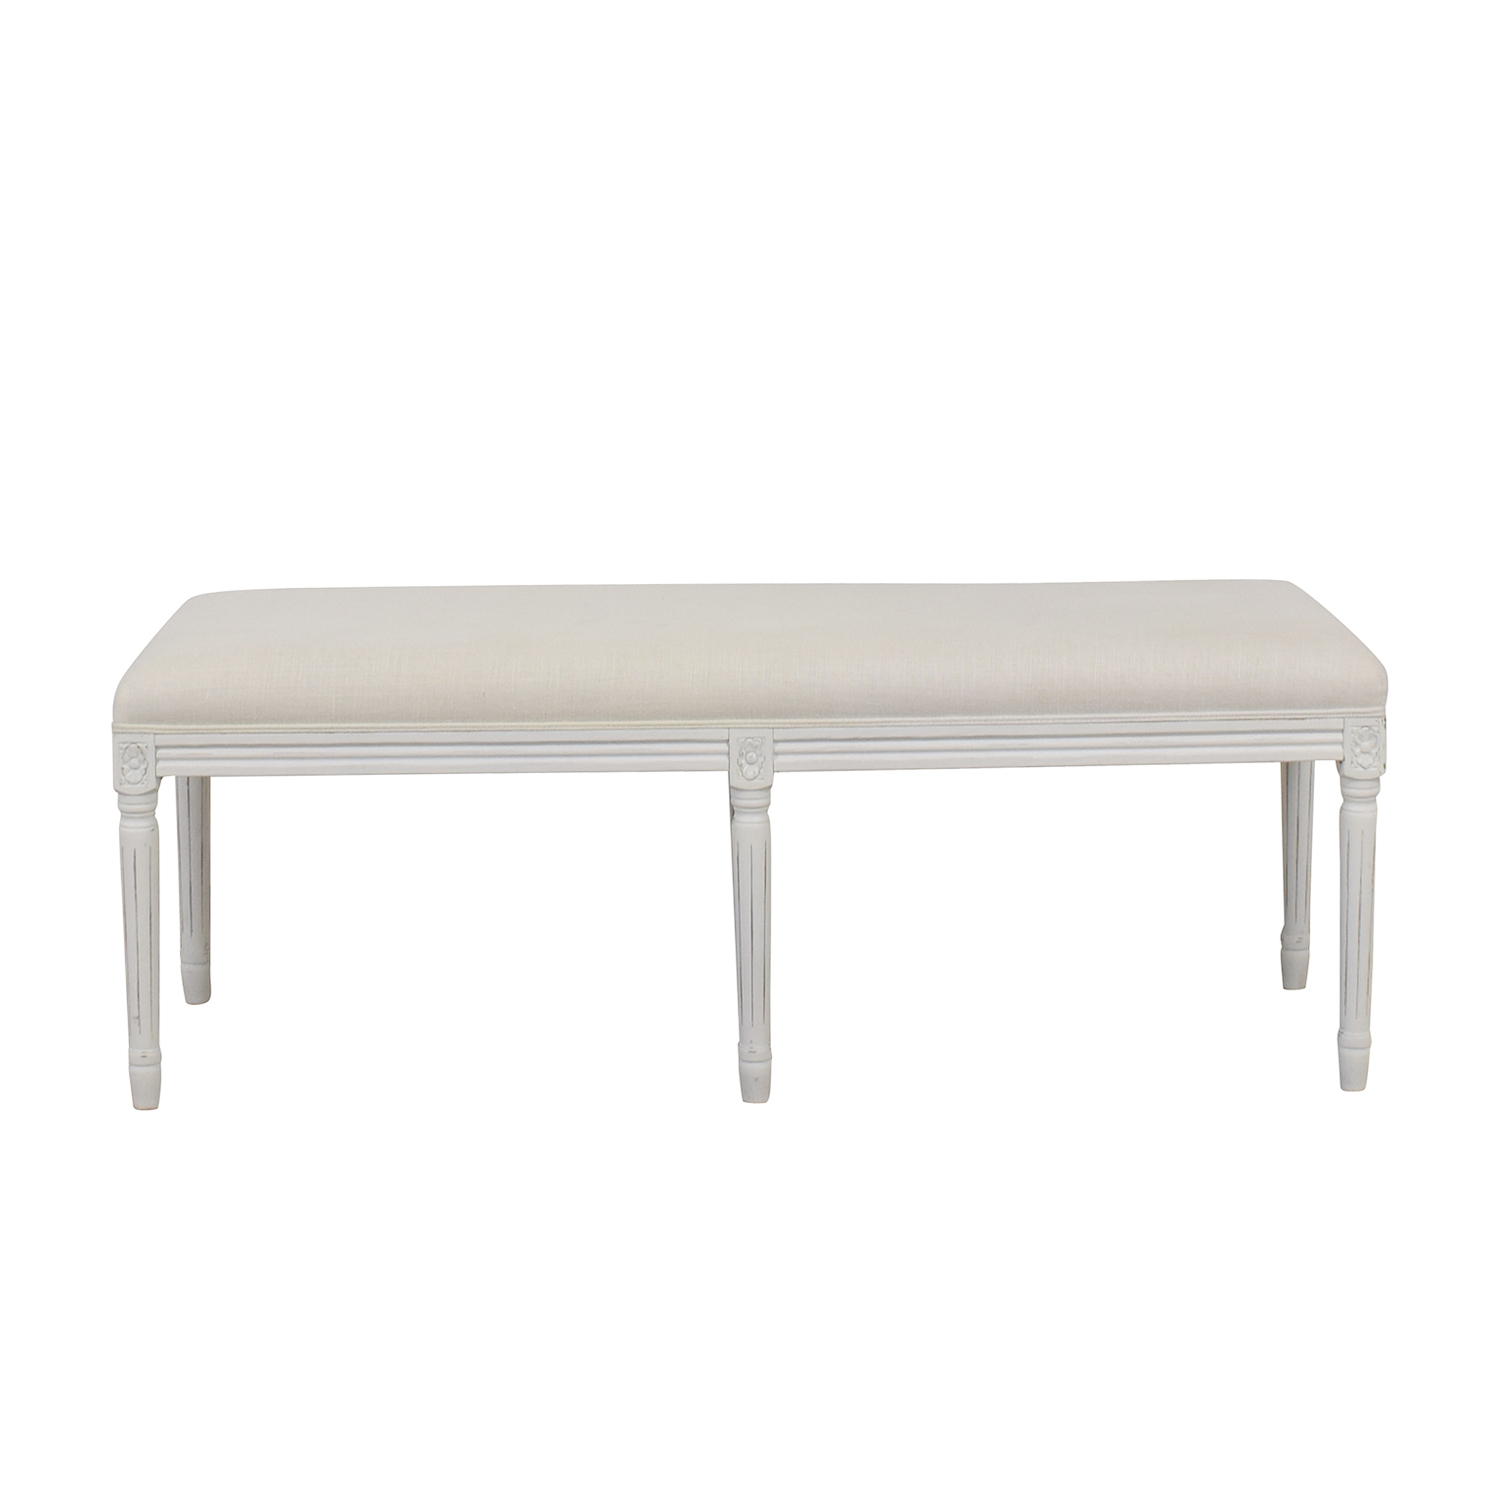 Restoration Hardware Restoration Hardware Louis White Bench dimensions